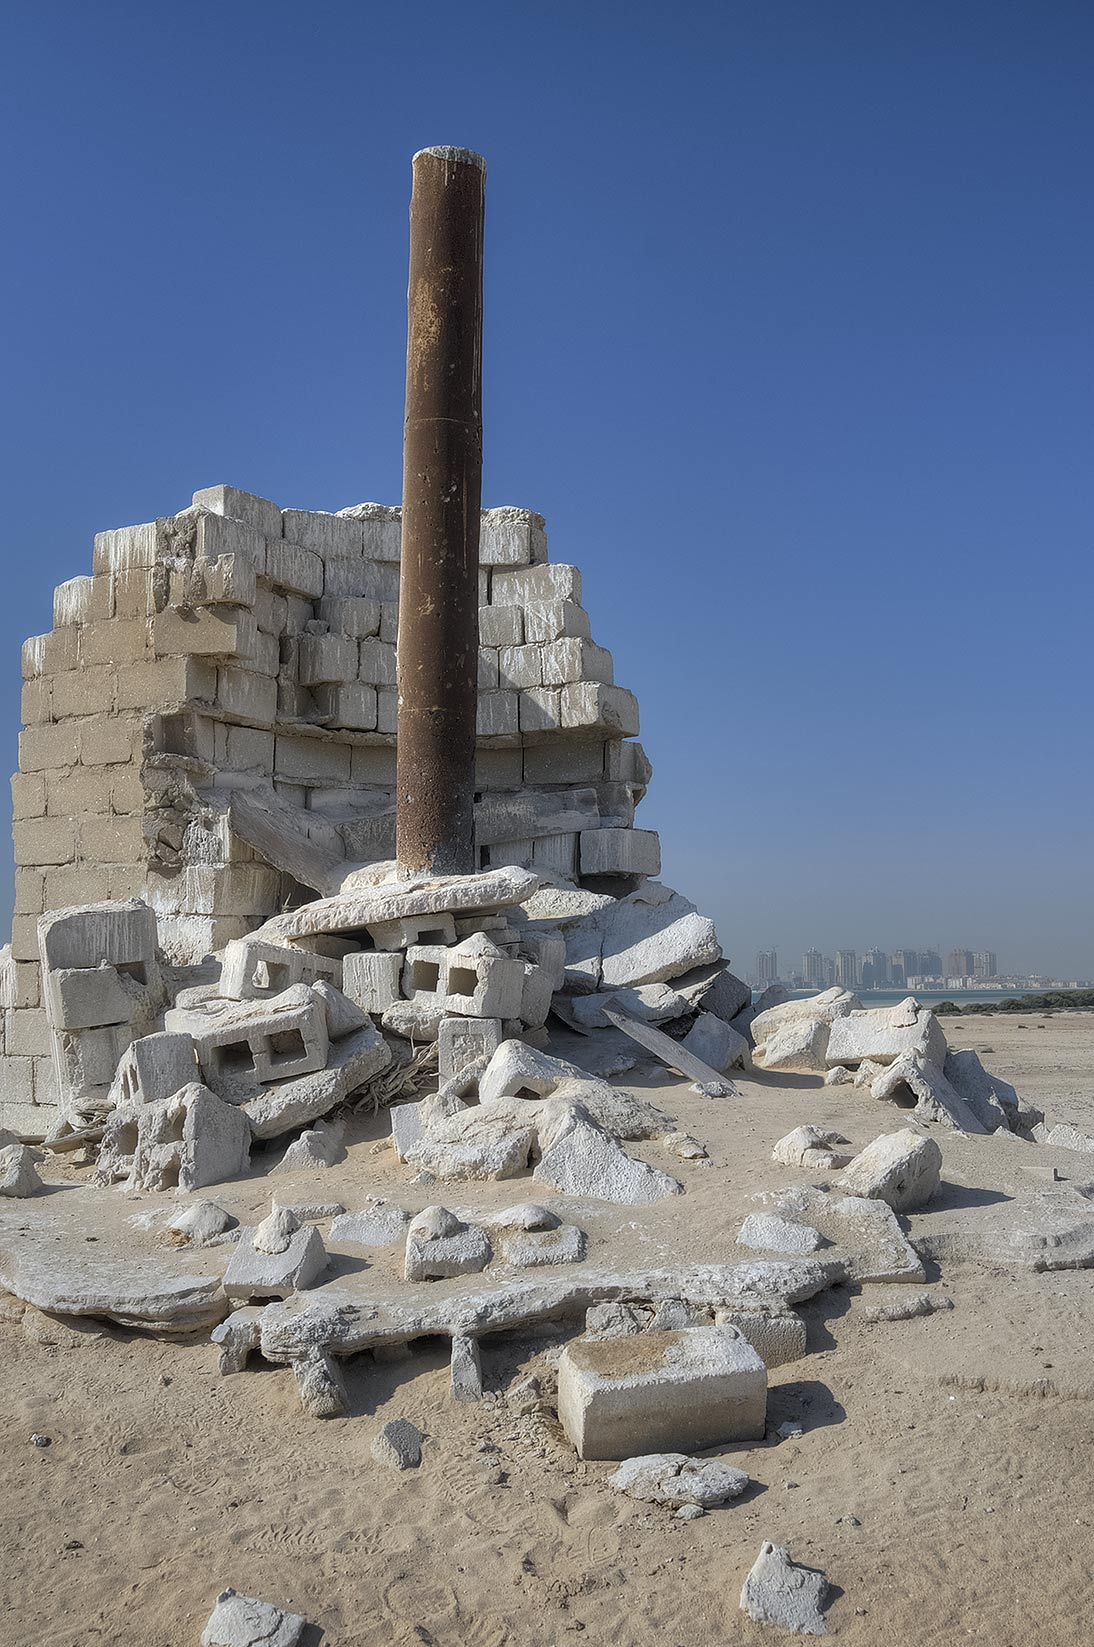 Ruins of chimney made from cinder blocks in Al Aaliya Island (Jazirat al Aliyah). Qatar